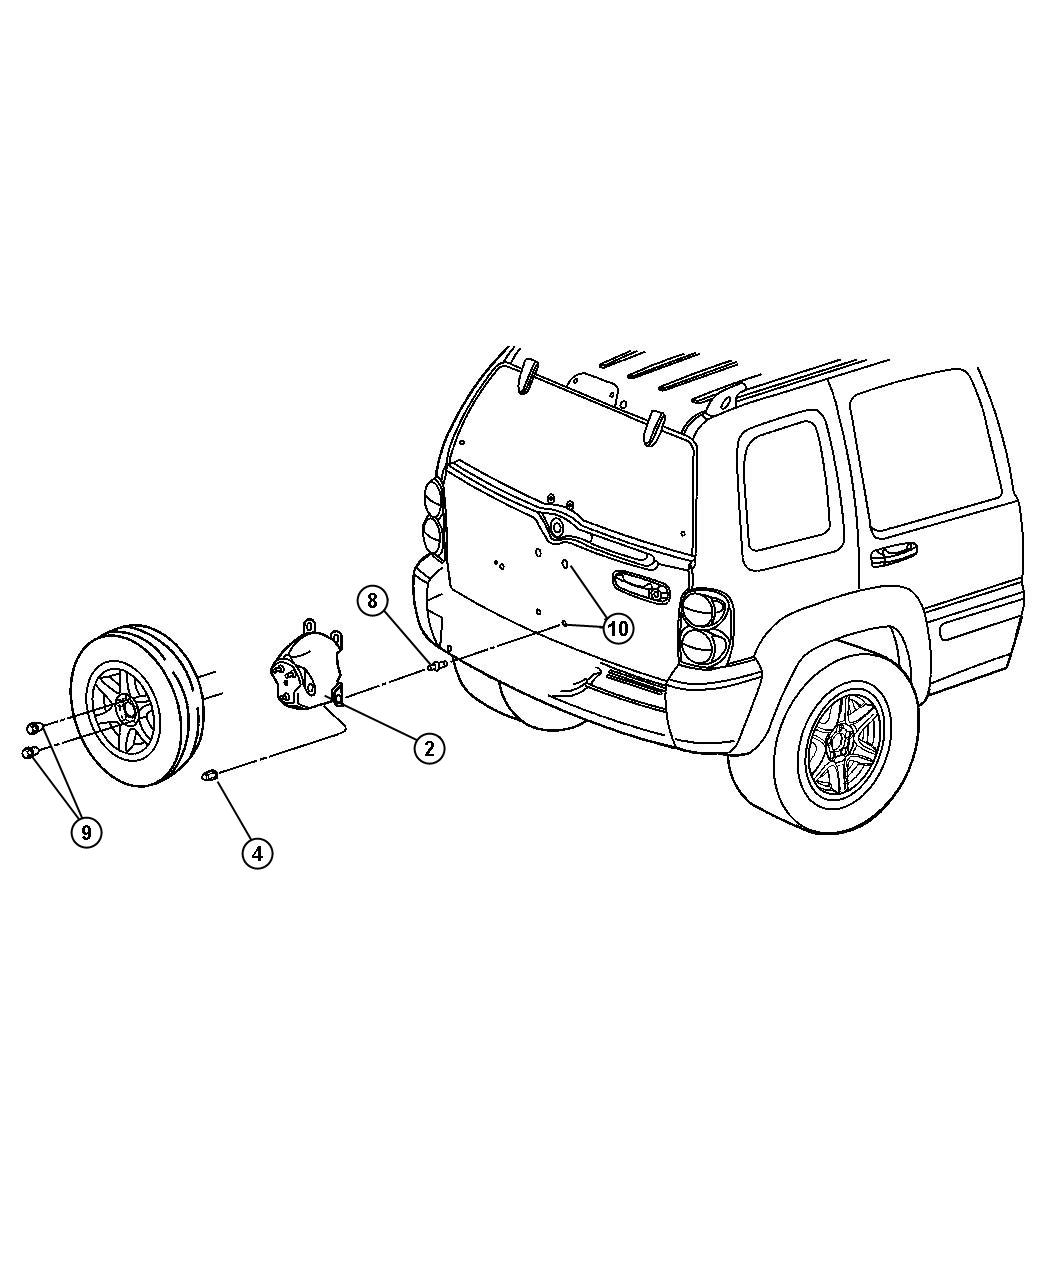 Jeep Liberty Stud. [tbr], spare tire carrier attaching